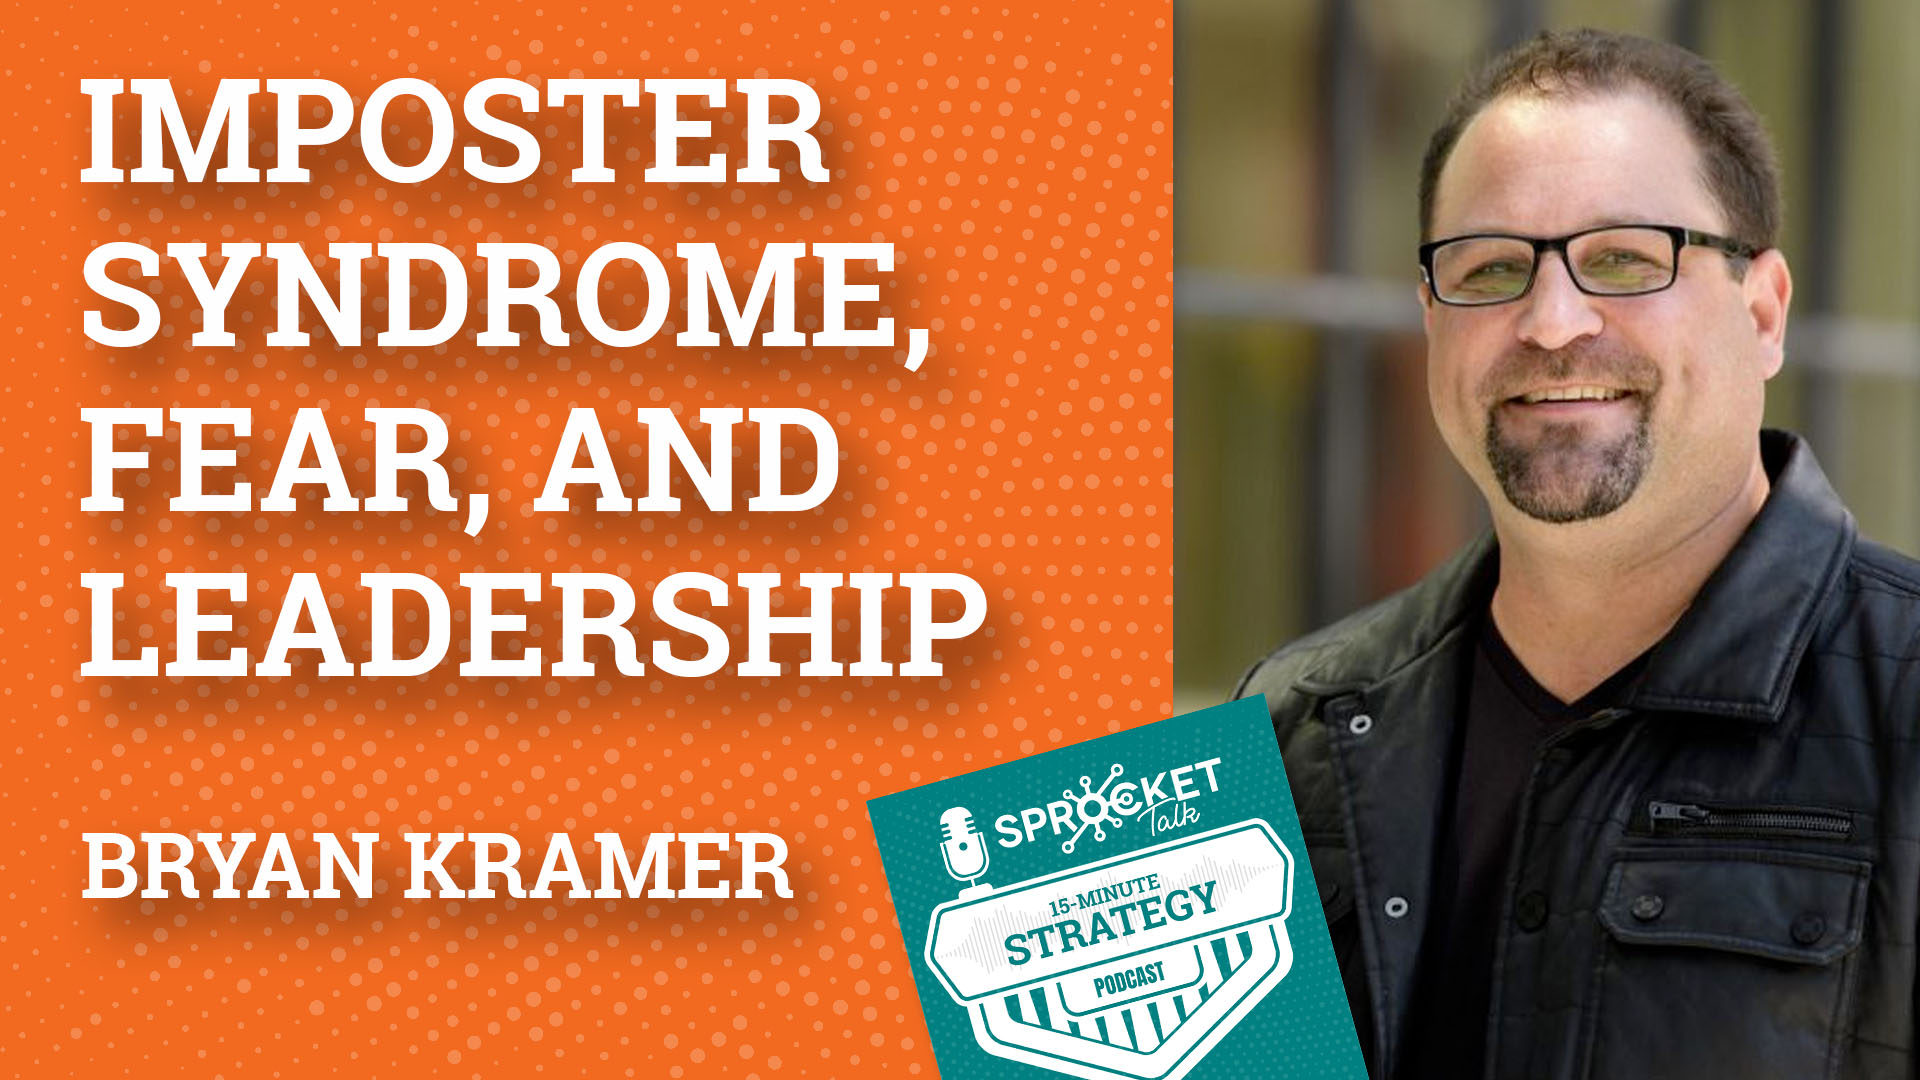 Bryan Kramer on Imposter Syndrome, Fear, & Co-Leadership | 15-Minute Strategy Podcast